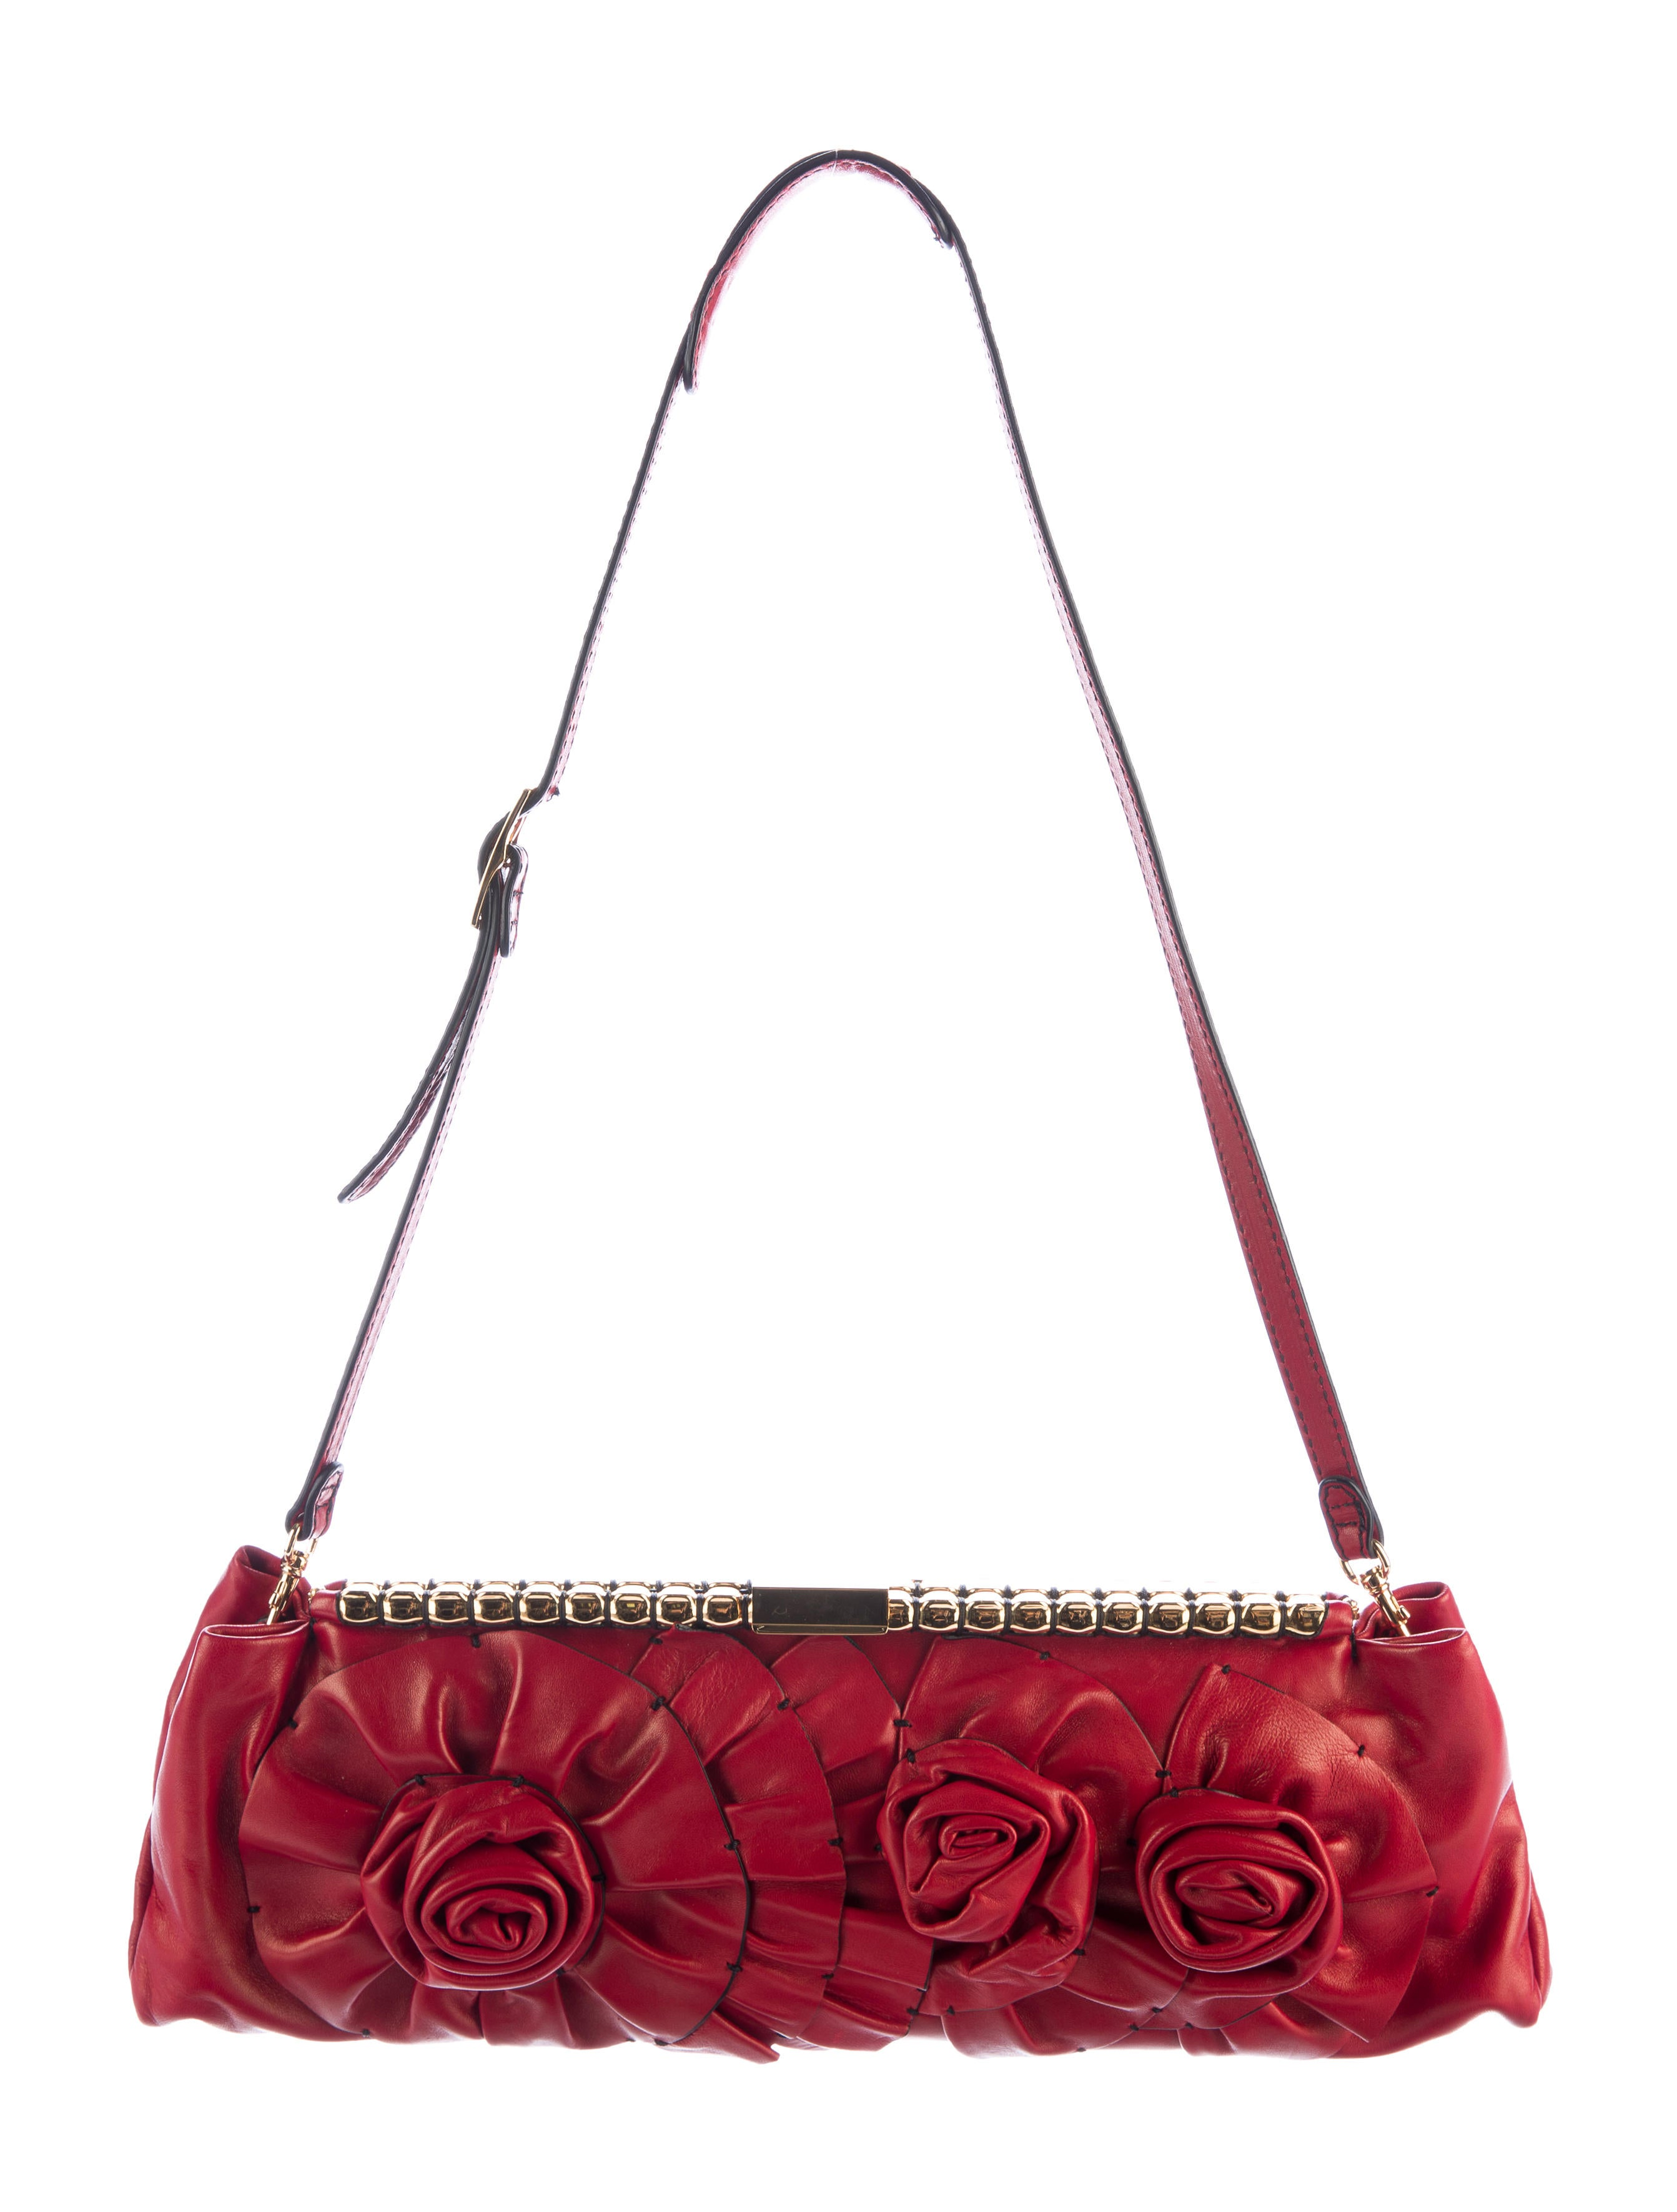 Valentino Floral Appliquu00e9 Shoulder Bag - Handbags - VAL65602 | The RealReal